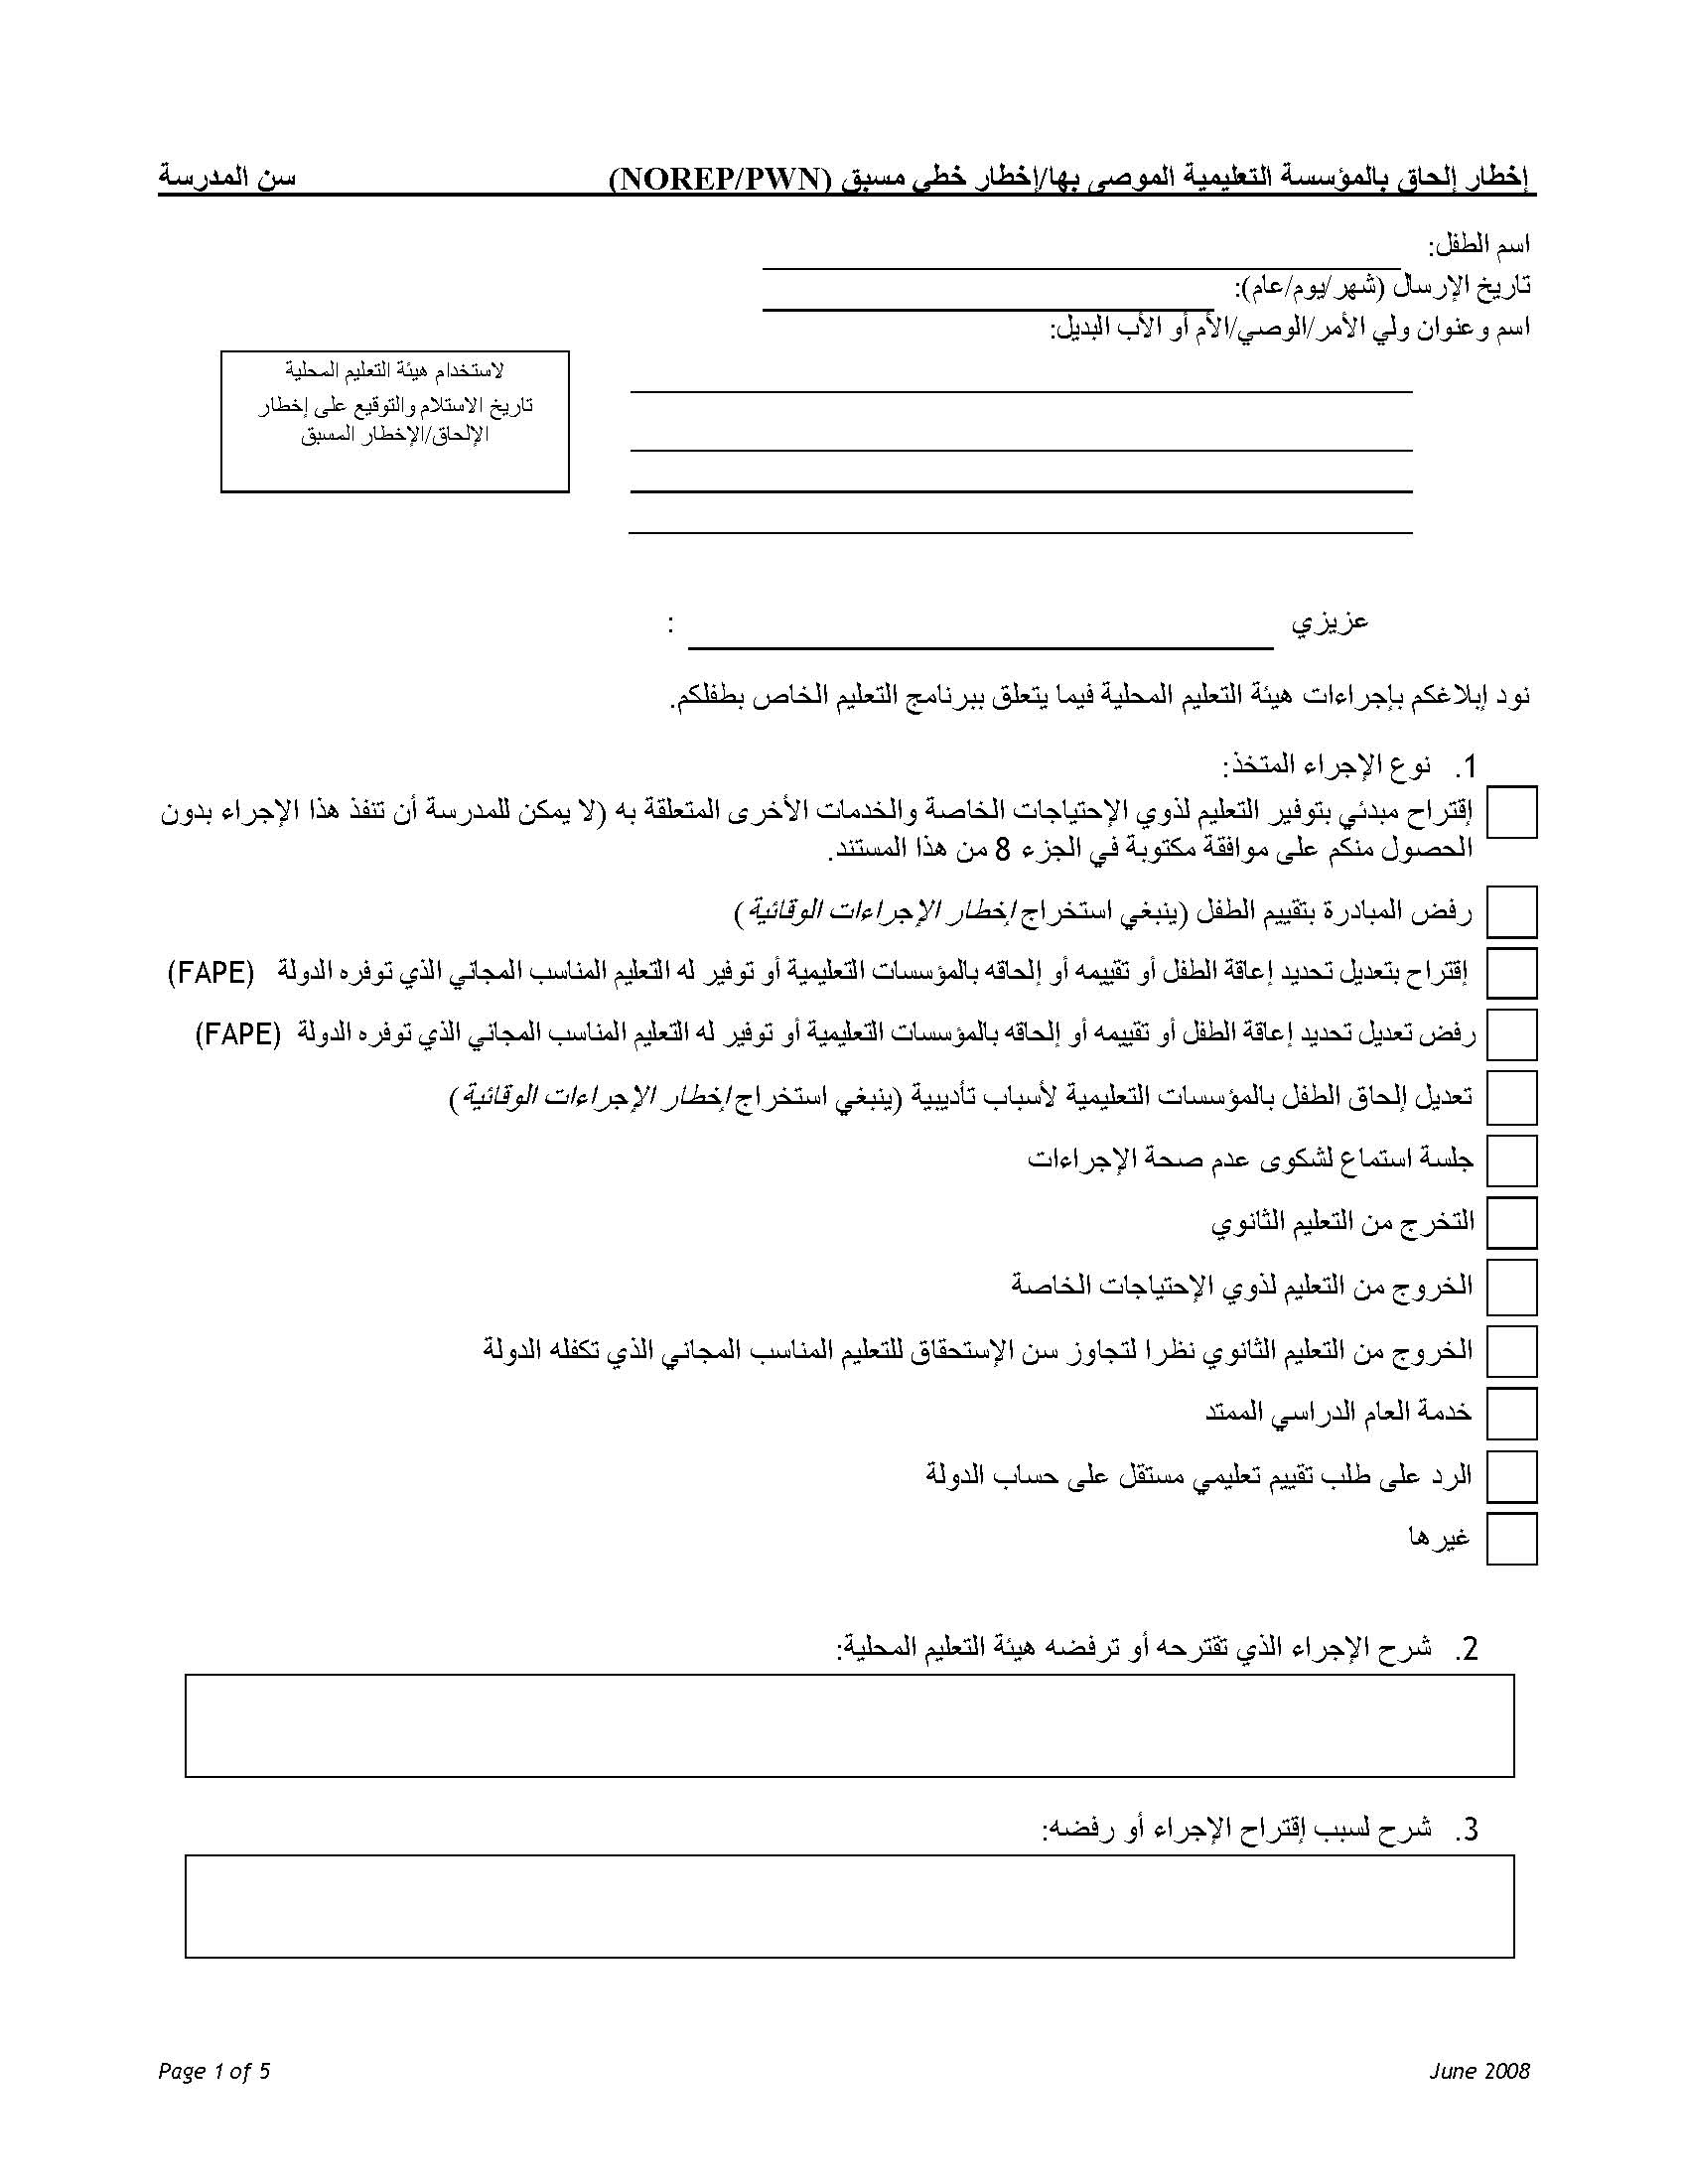 NOTICE OF RECOMMENDED EDUCATIONAL PLACEMENT/PRIOR WRITTEN NOTICE (NOREP/PWN) - School Age - Arabic